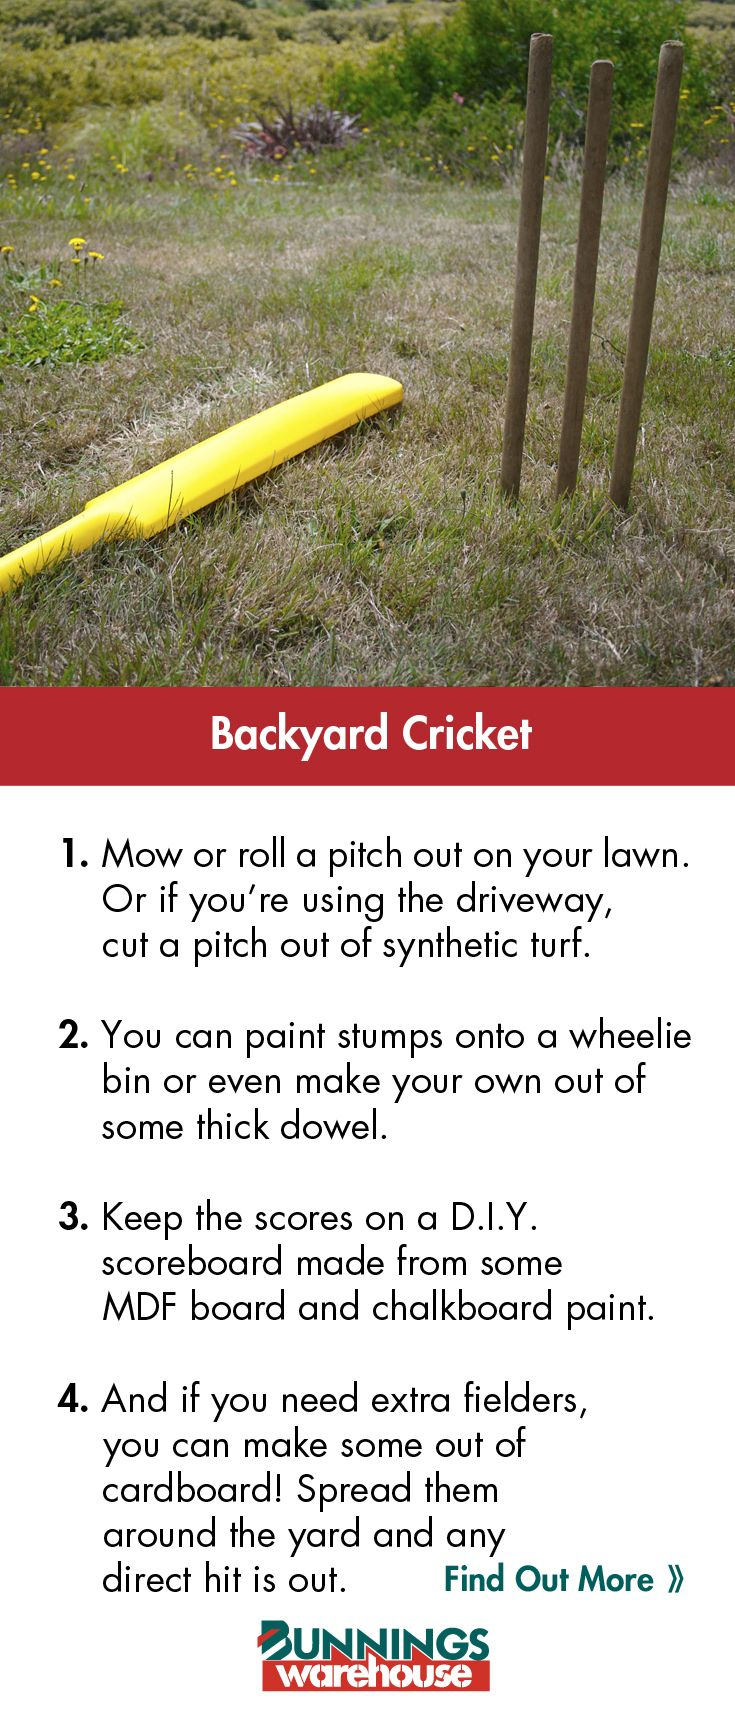 Nothing's more #Australian than a game of backyard cricket. #Summer #DIY